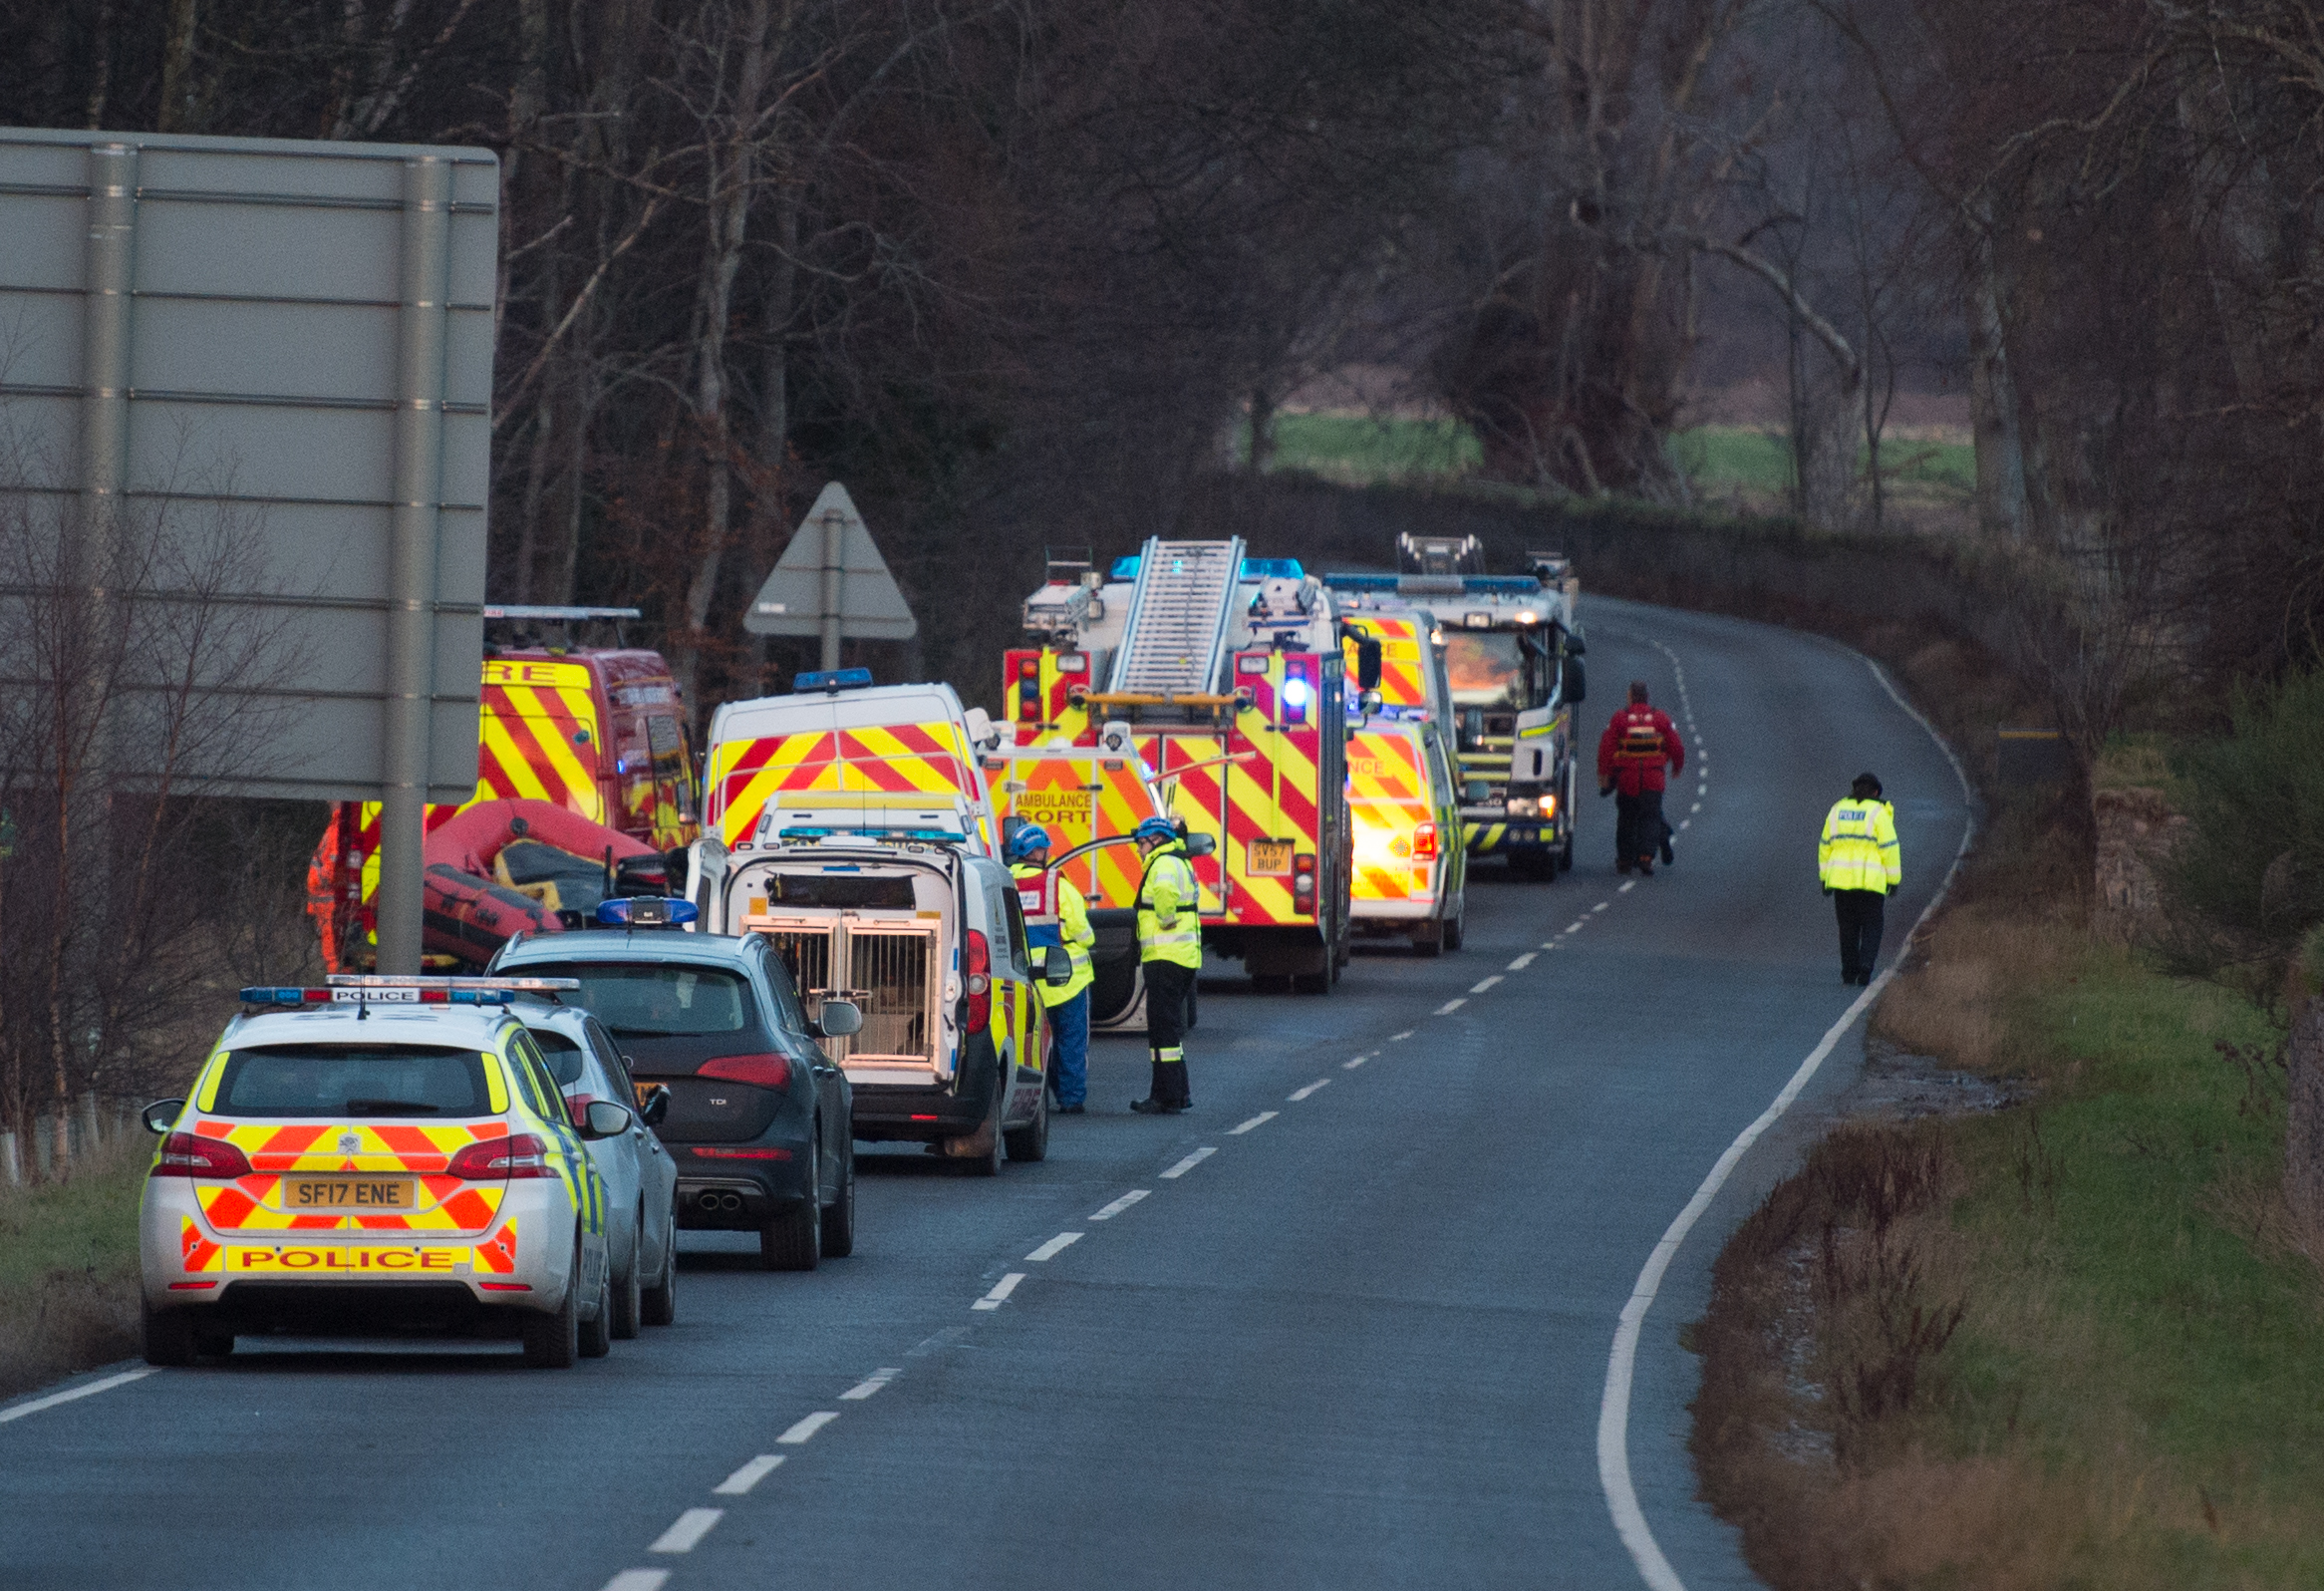 Reports of someone in difficulty sparked a large emergency response.